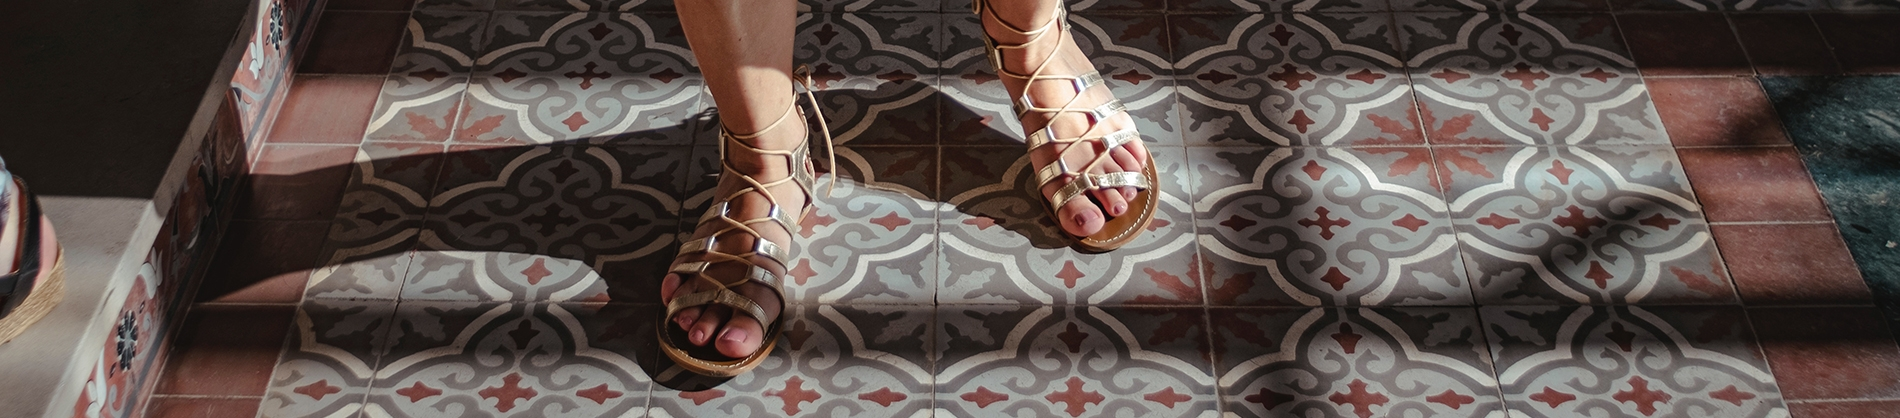 A women in sandals walking on a ornate tiled floor